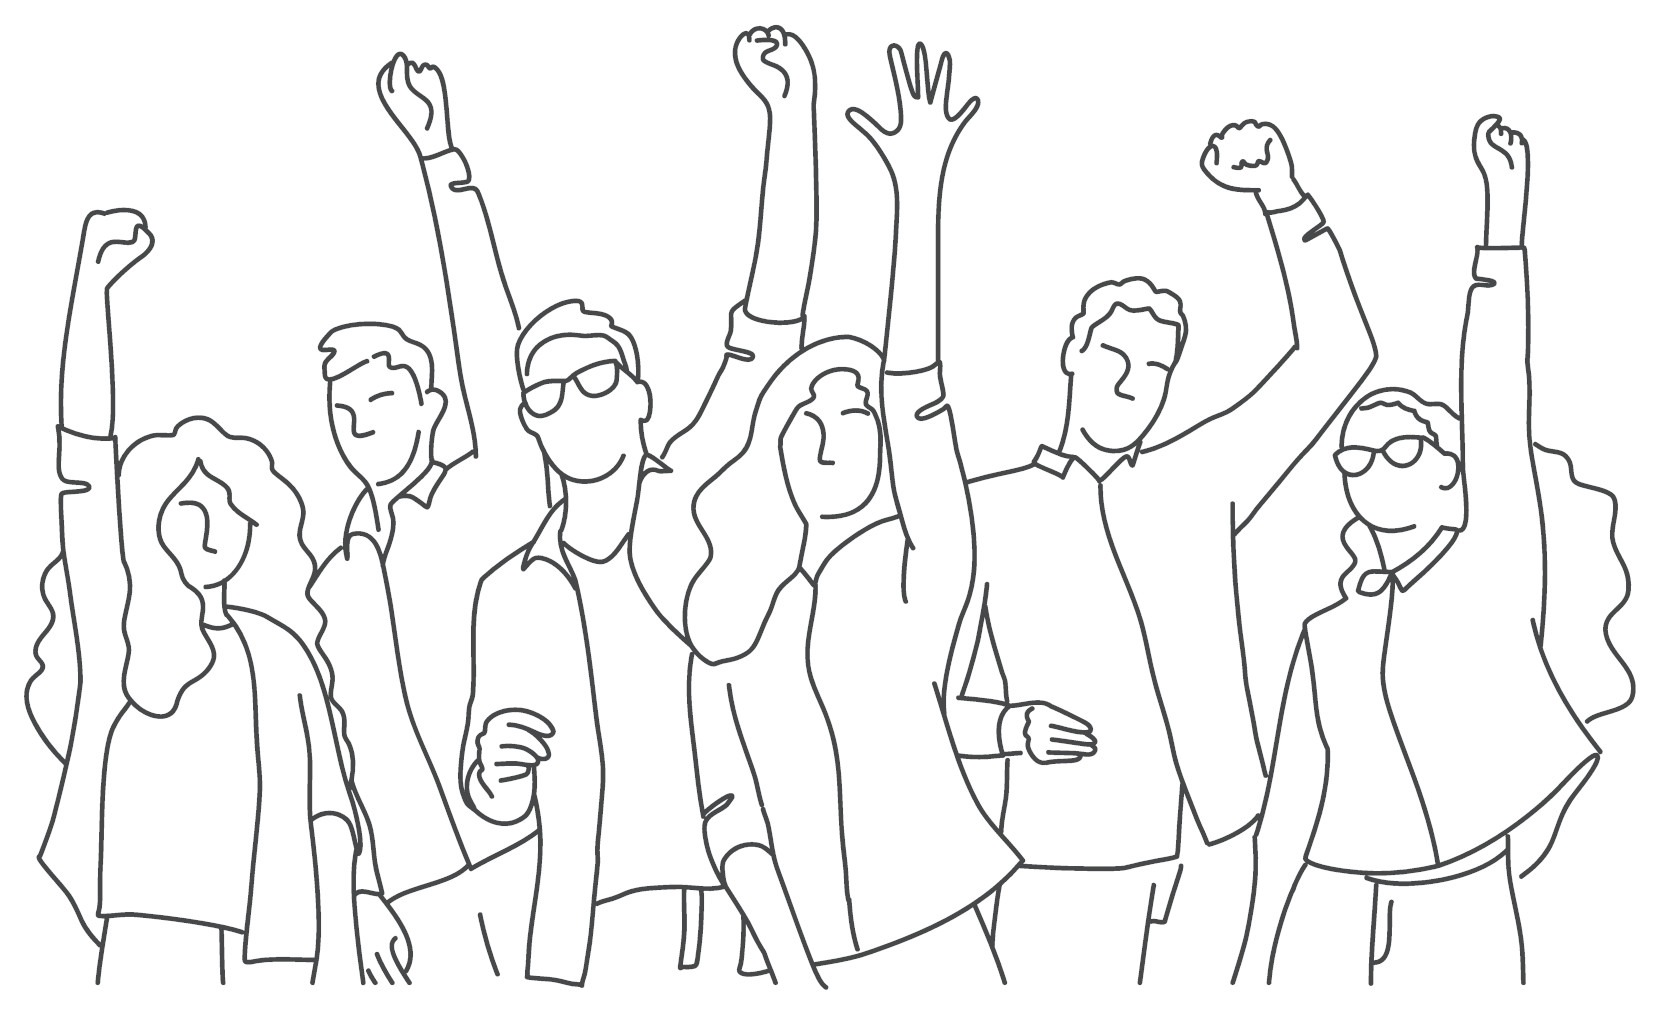 Line drawing for a group of people celebrating with their hands in the air.